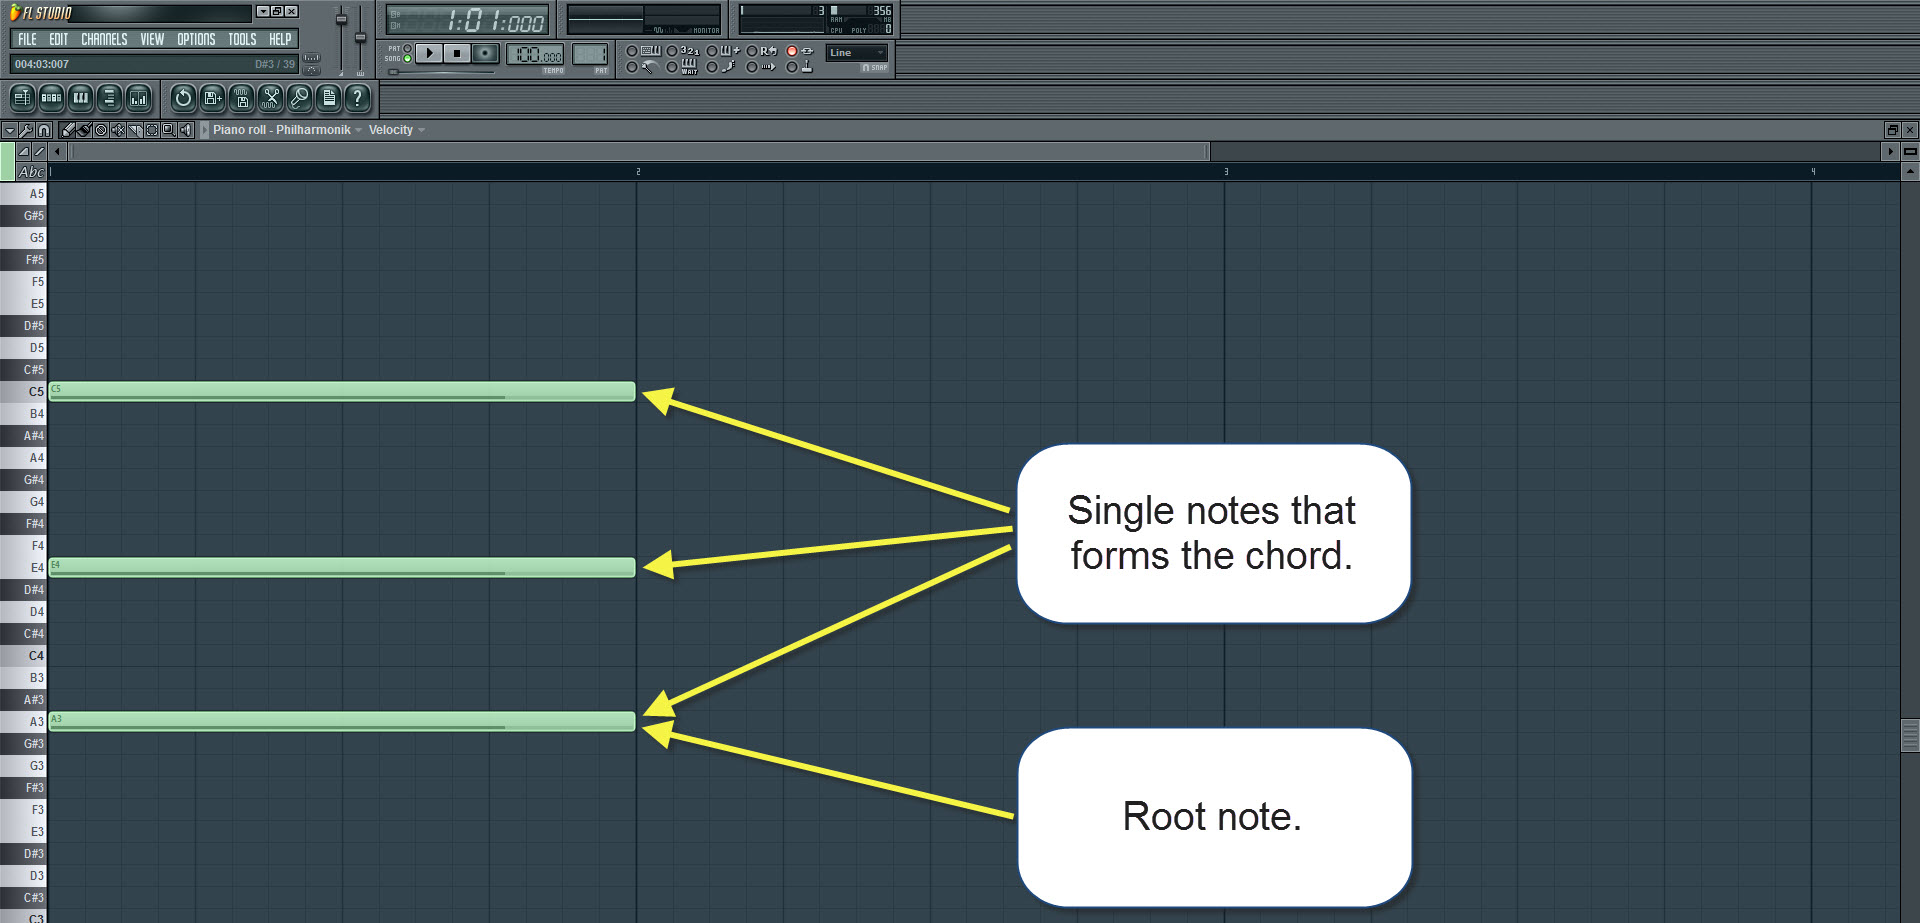 How To Make A Song in FL Studio? Start With The Chords : HTMEM